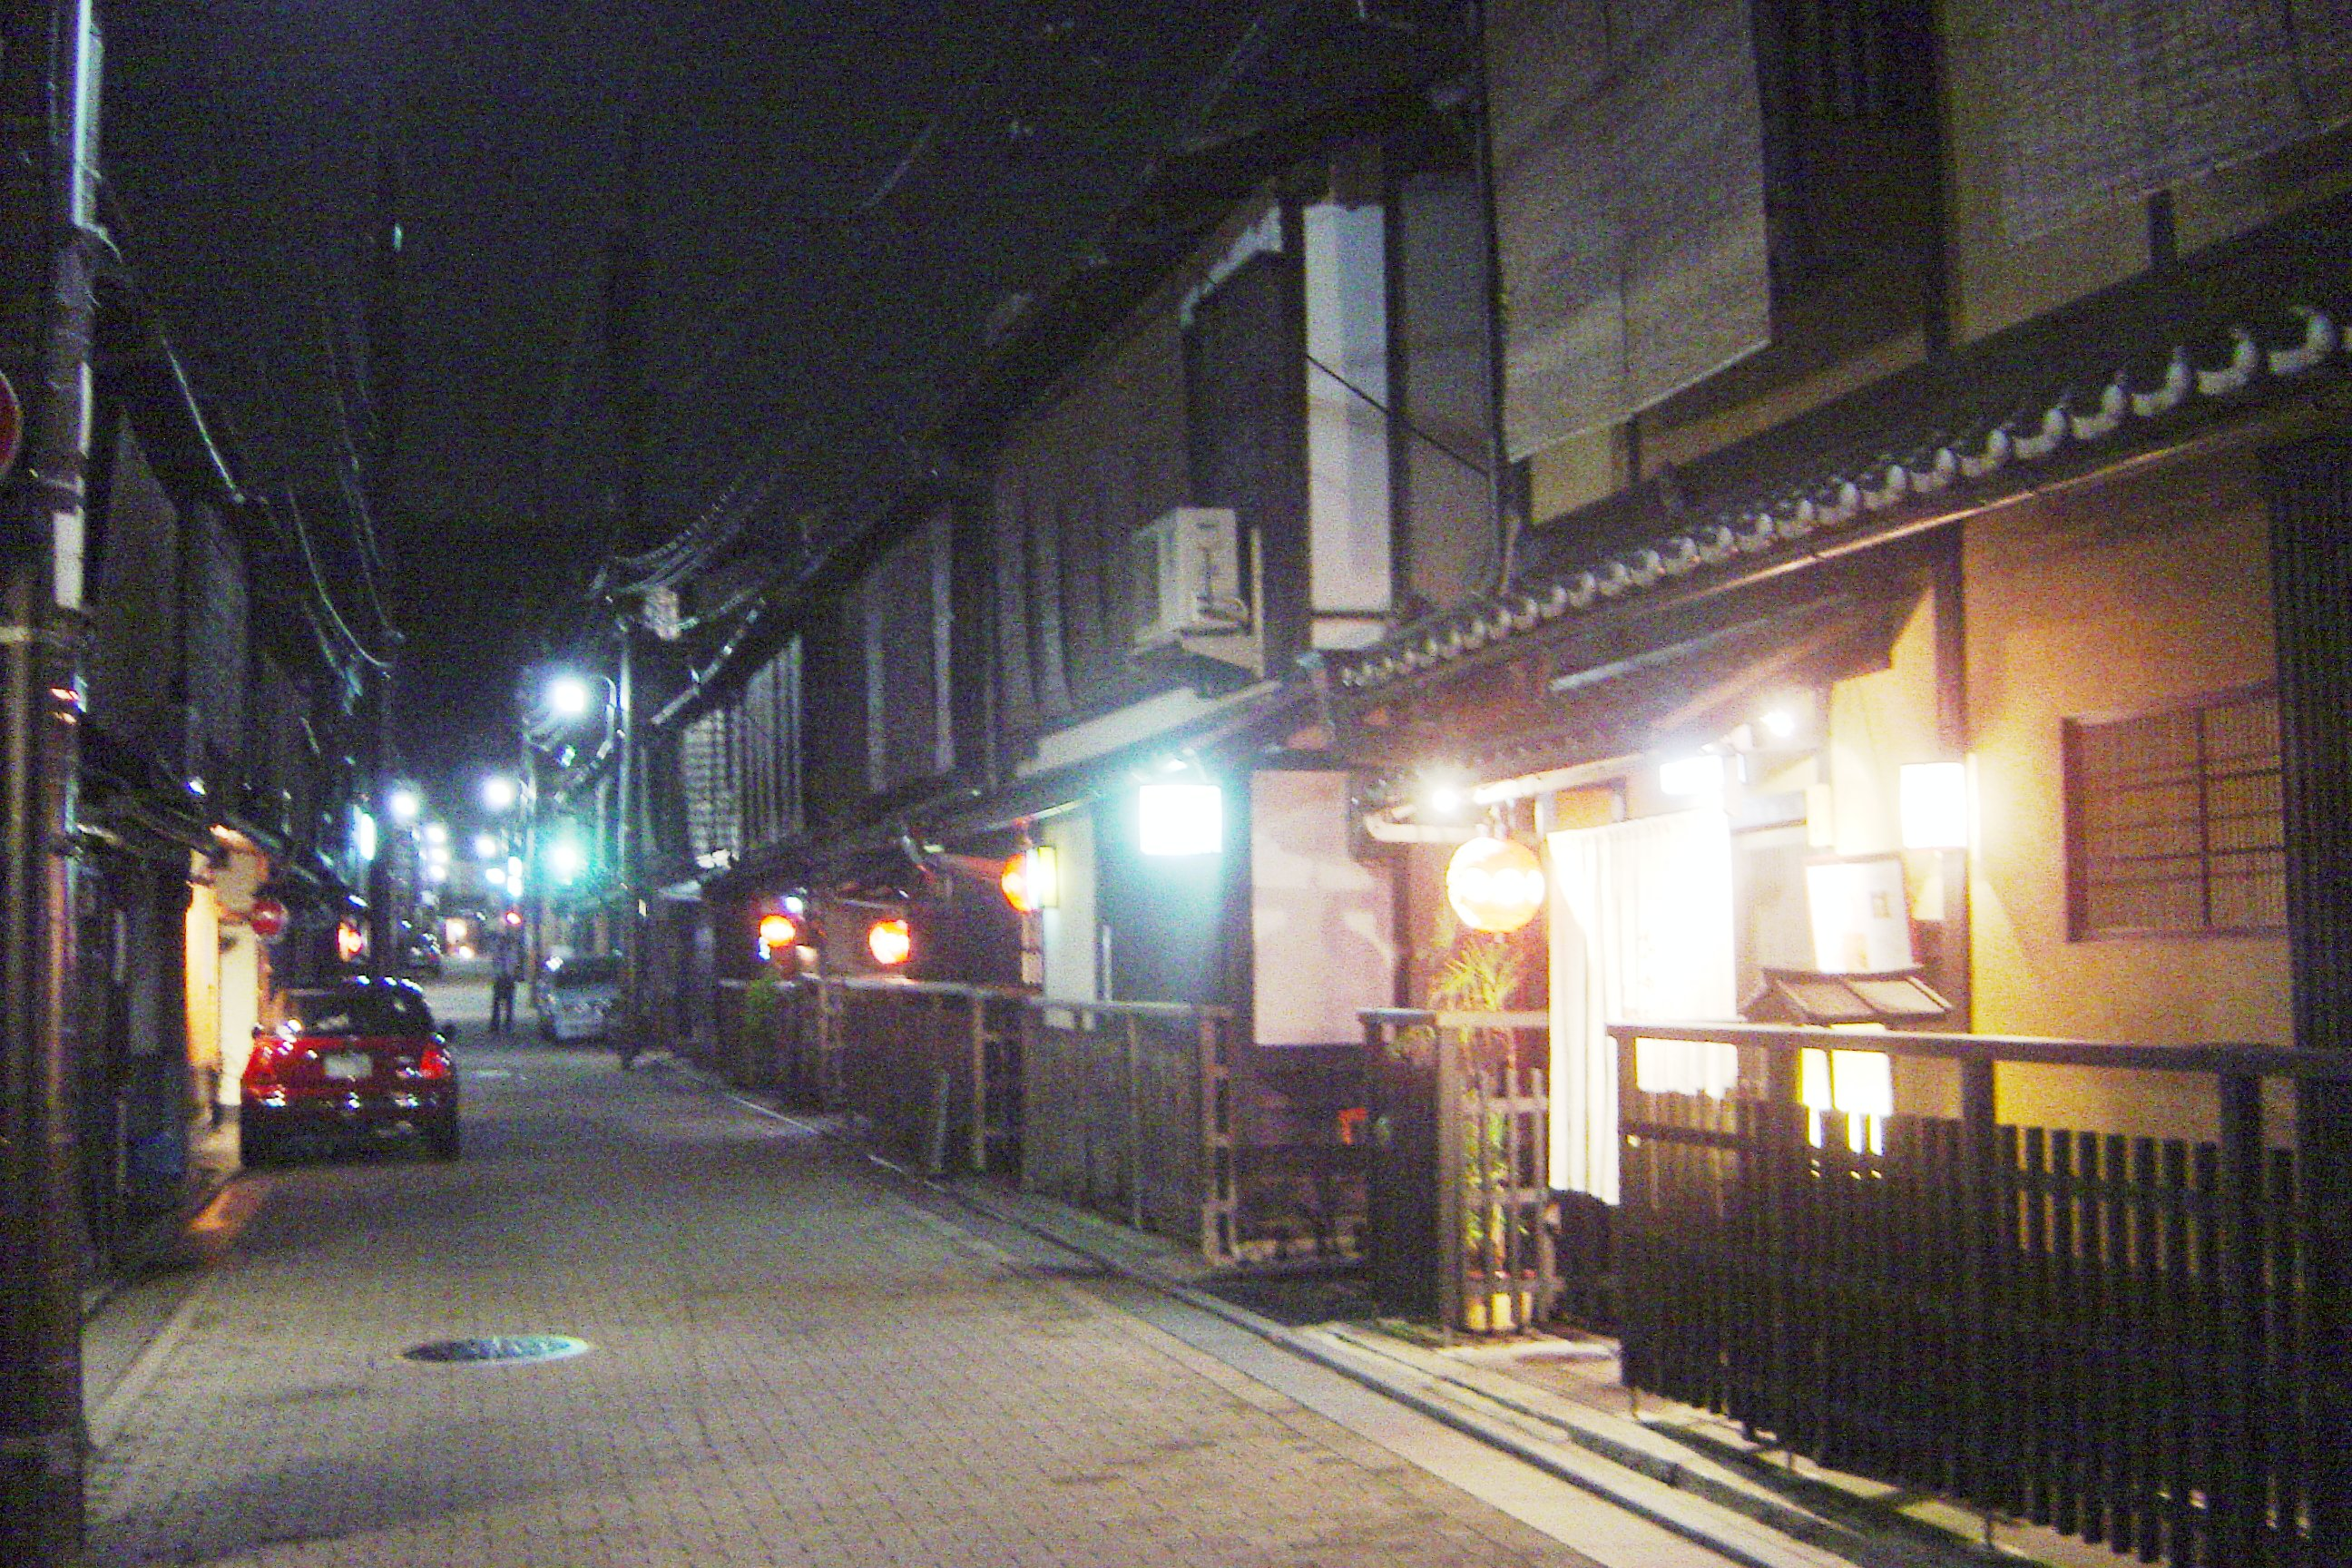 File:Japan Kyoto Gion DSC00827.jpg - Wikipedia